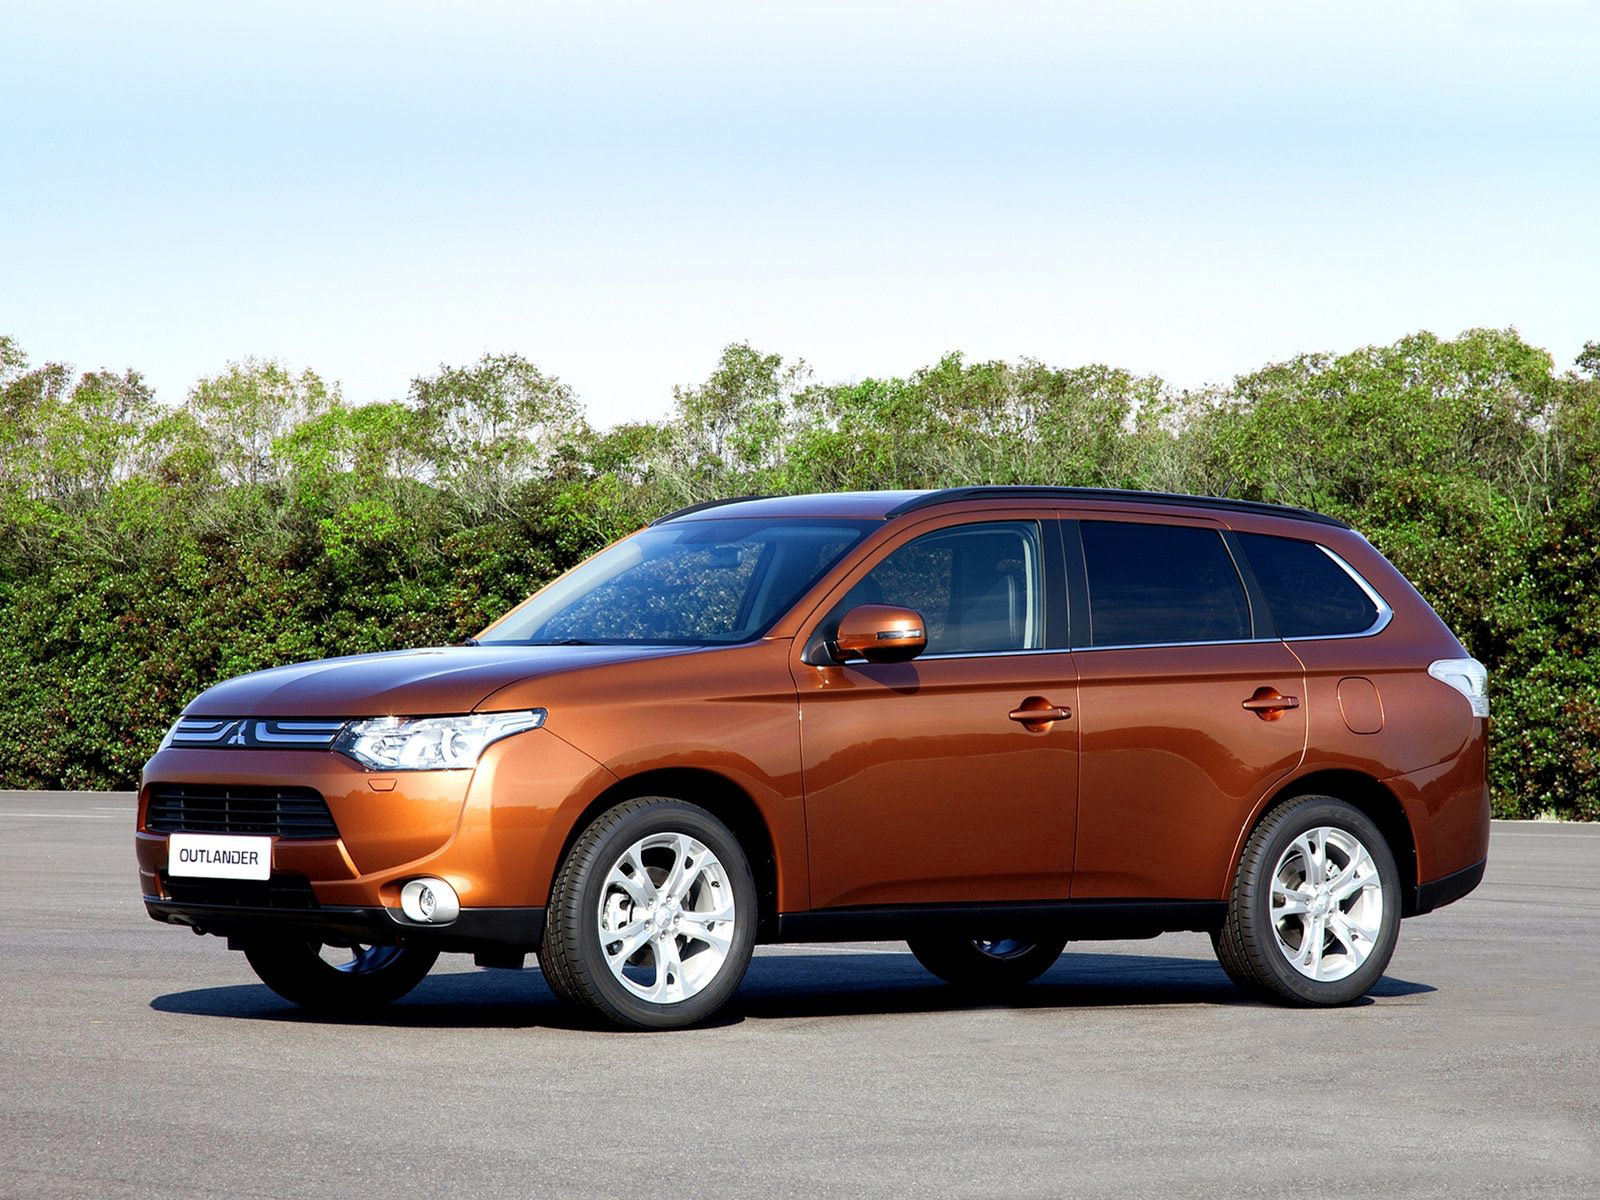 mitsubishi car insurance information 2013 outlander. Black Bedroom Furniture Sets. Home Design Ideas